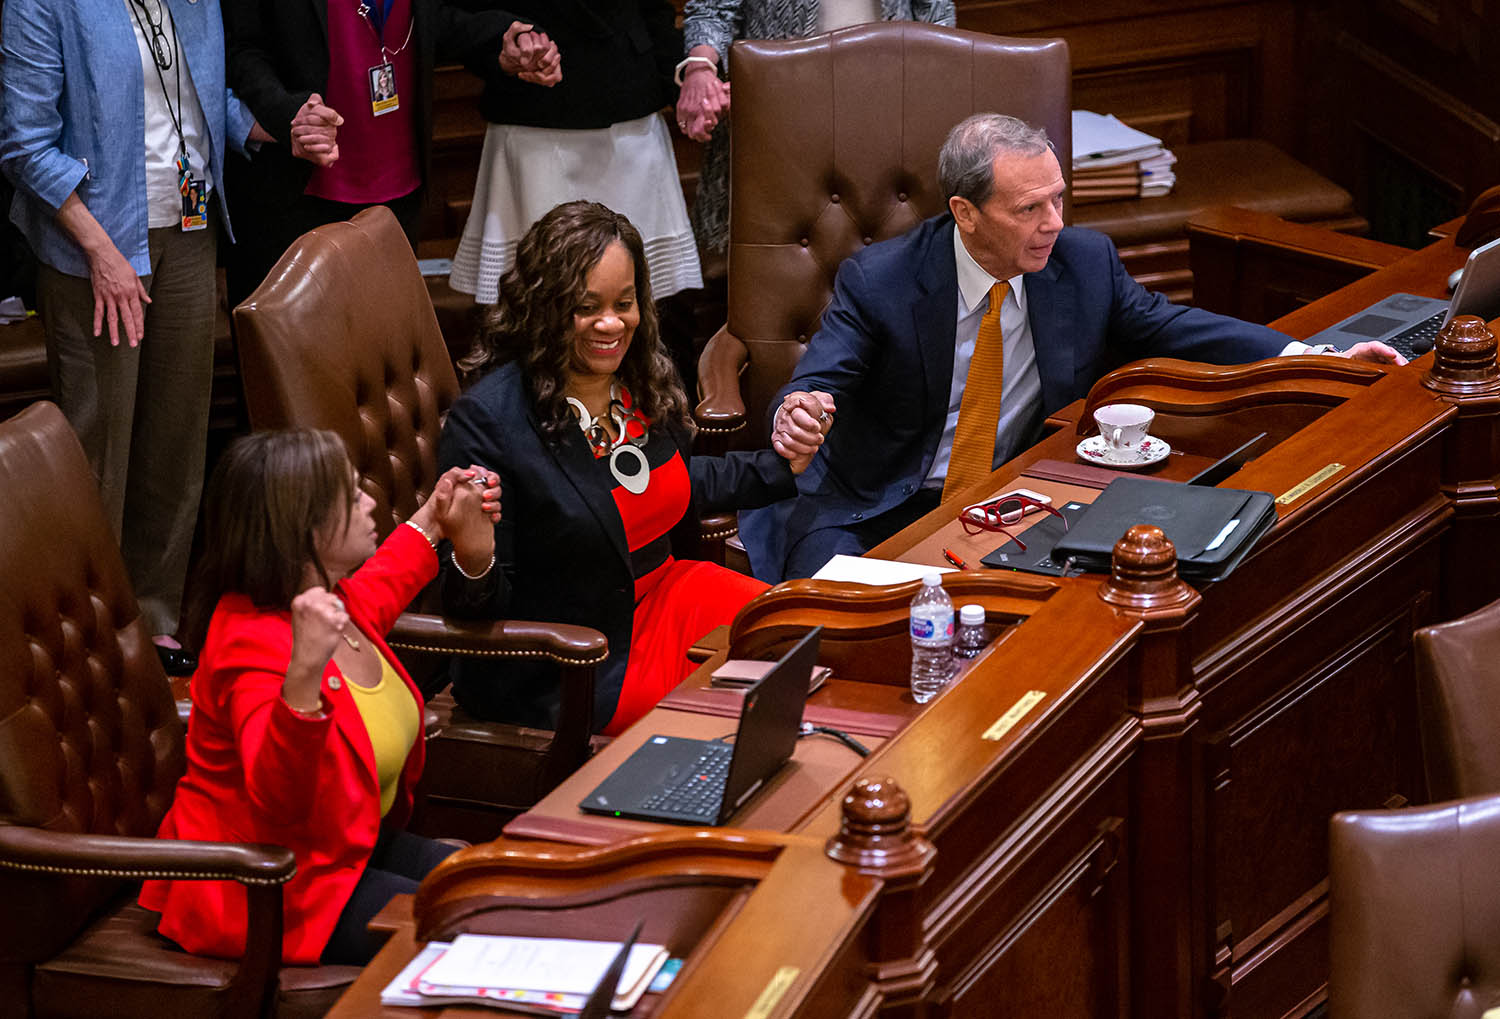 Illinois Senate President John Cullerton, D-Chicago, joins hands with Illinois State Sen. Kimberly A. Lightford, D-Maywood, center, and Illinois State Sen. Iris Martinez, D-Chicago, left, as they vote on the Reproductive Health Act on the floor of the Illinois Senate late into the evening on the scheduled last day of the Spring Session at the Illinois State Capitol, Friday, May 31, 2019, in Springfield, Ill. [Justin L. Fowler/The State Journal-Register]